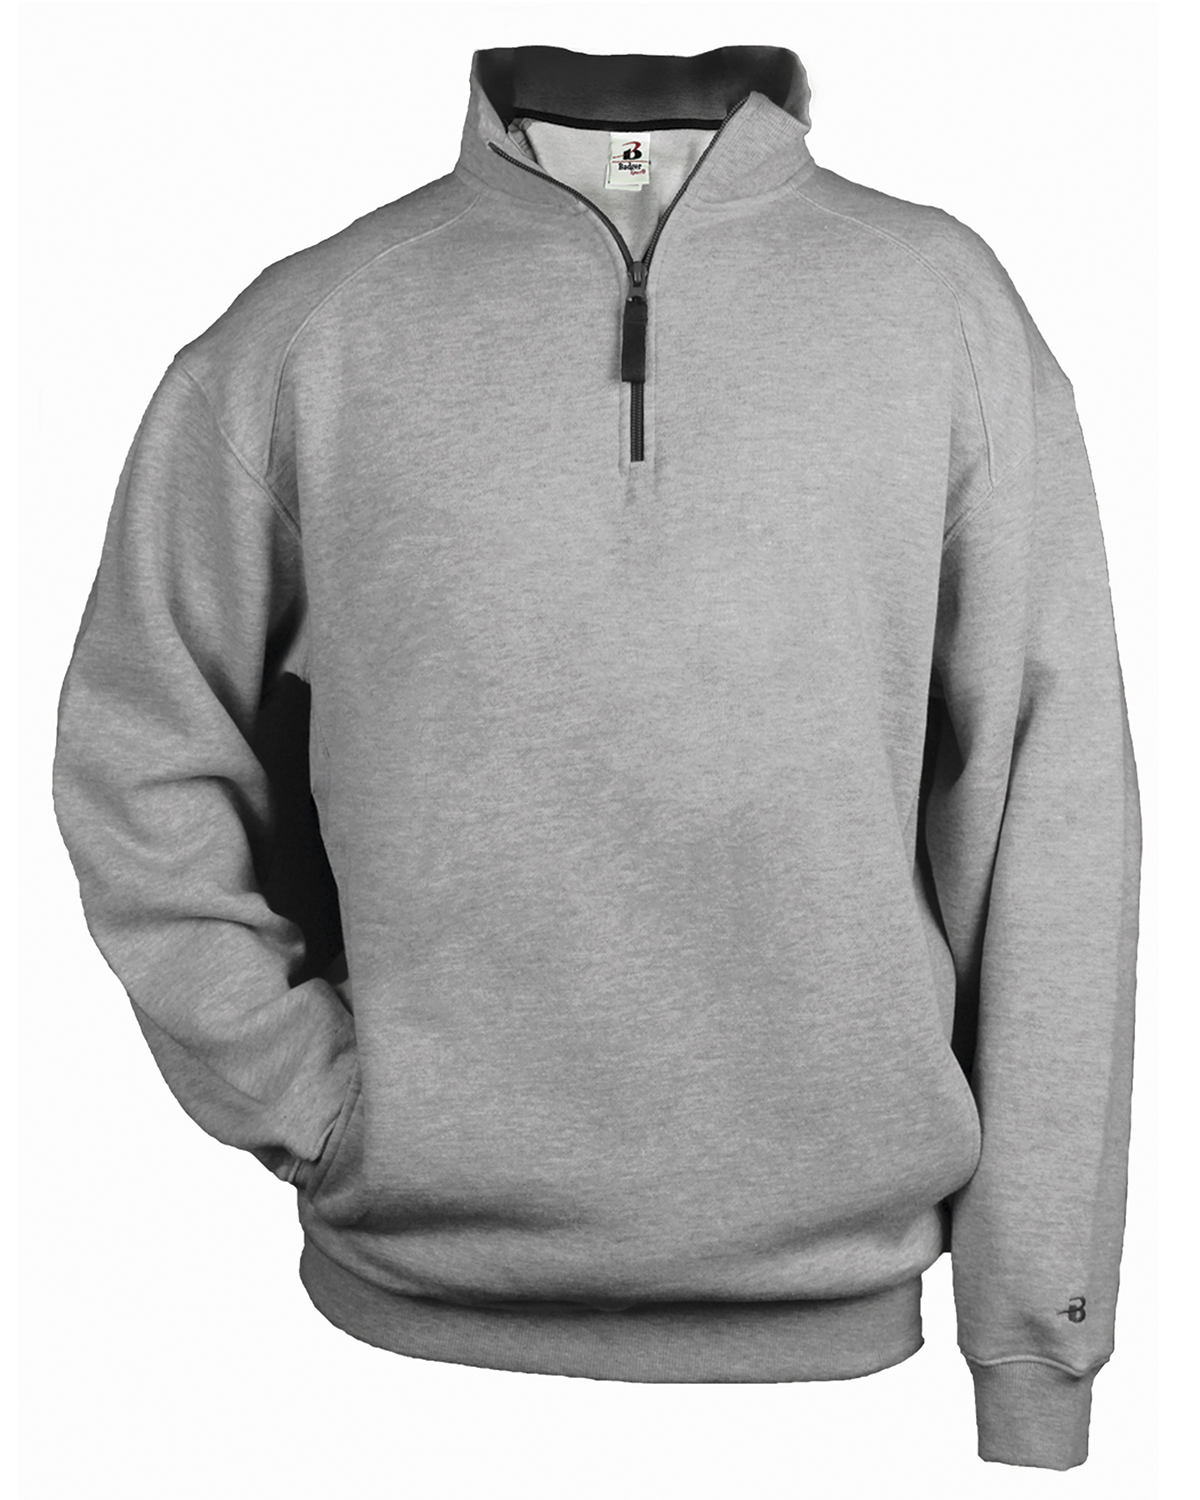 Quarter Zip Fleece Kangaroo Pocket - from $14.74